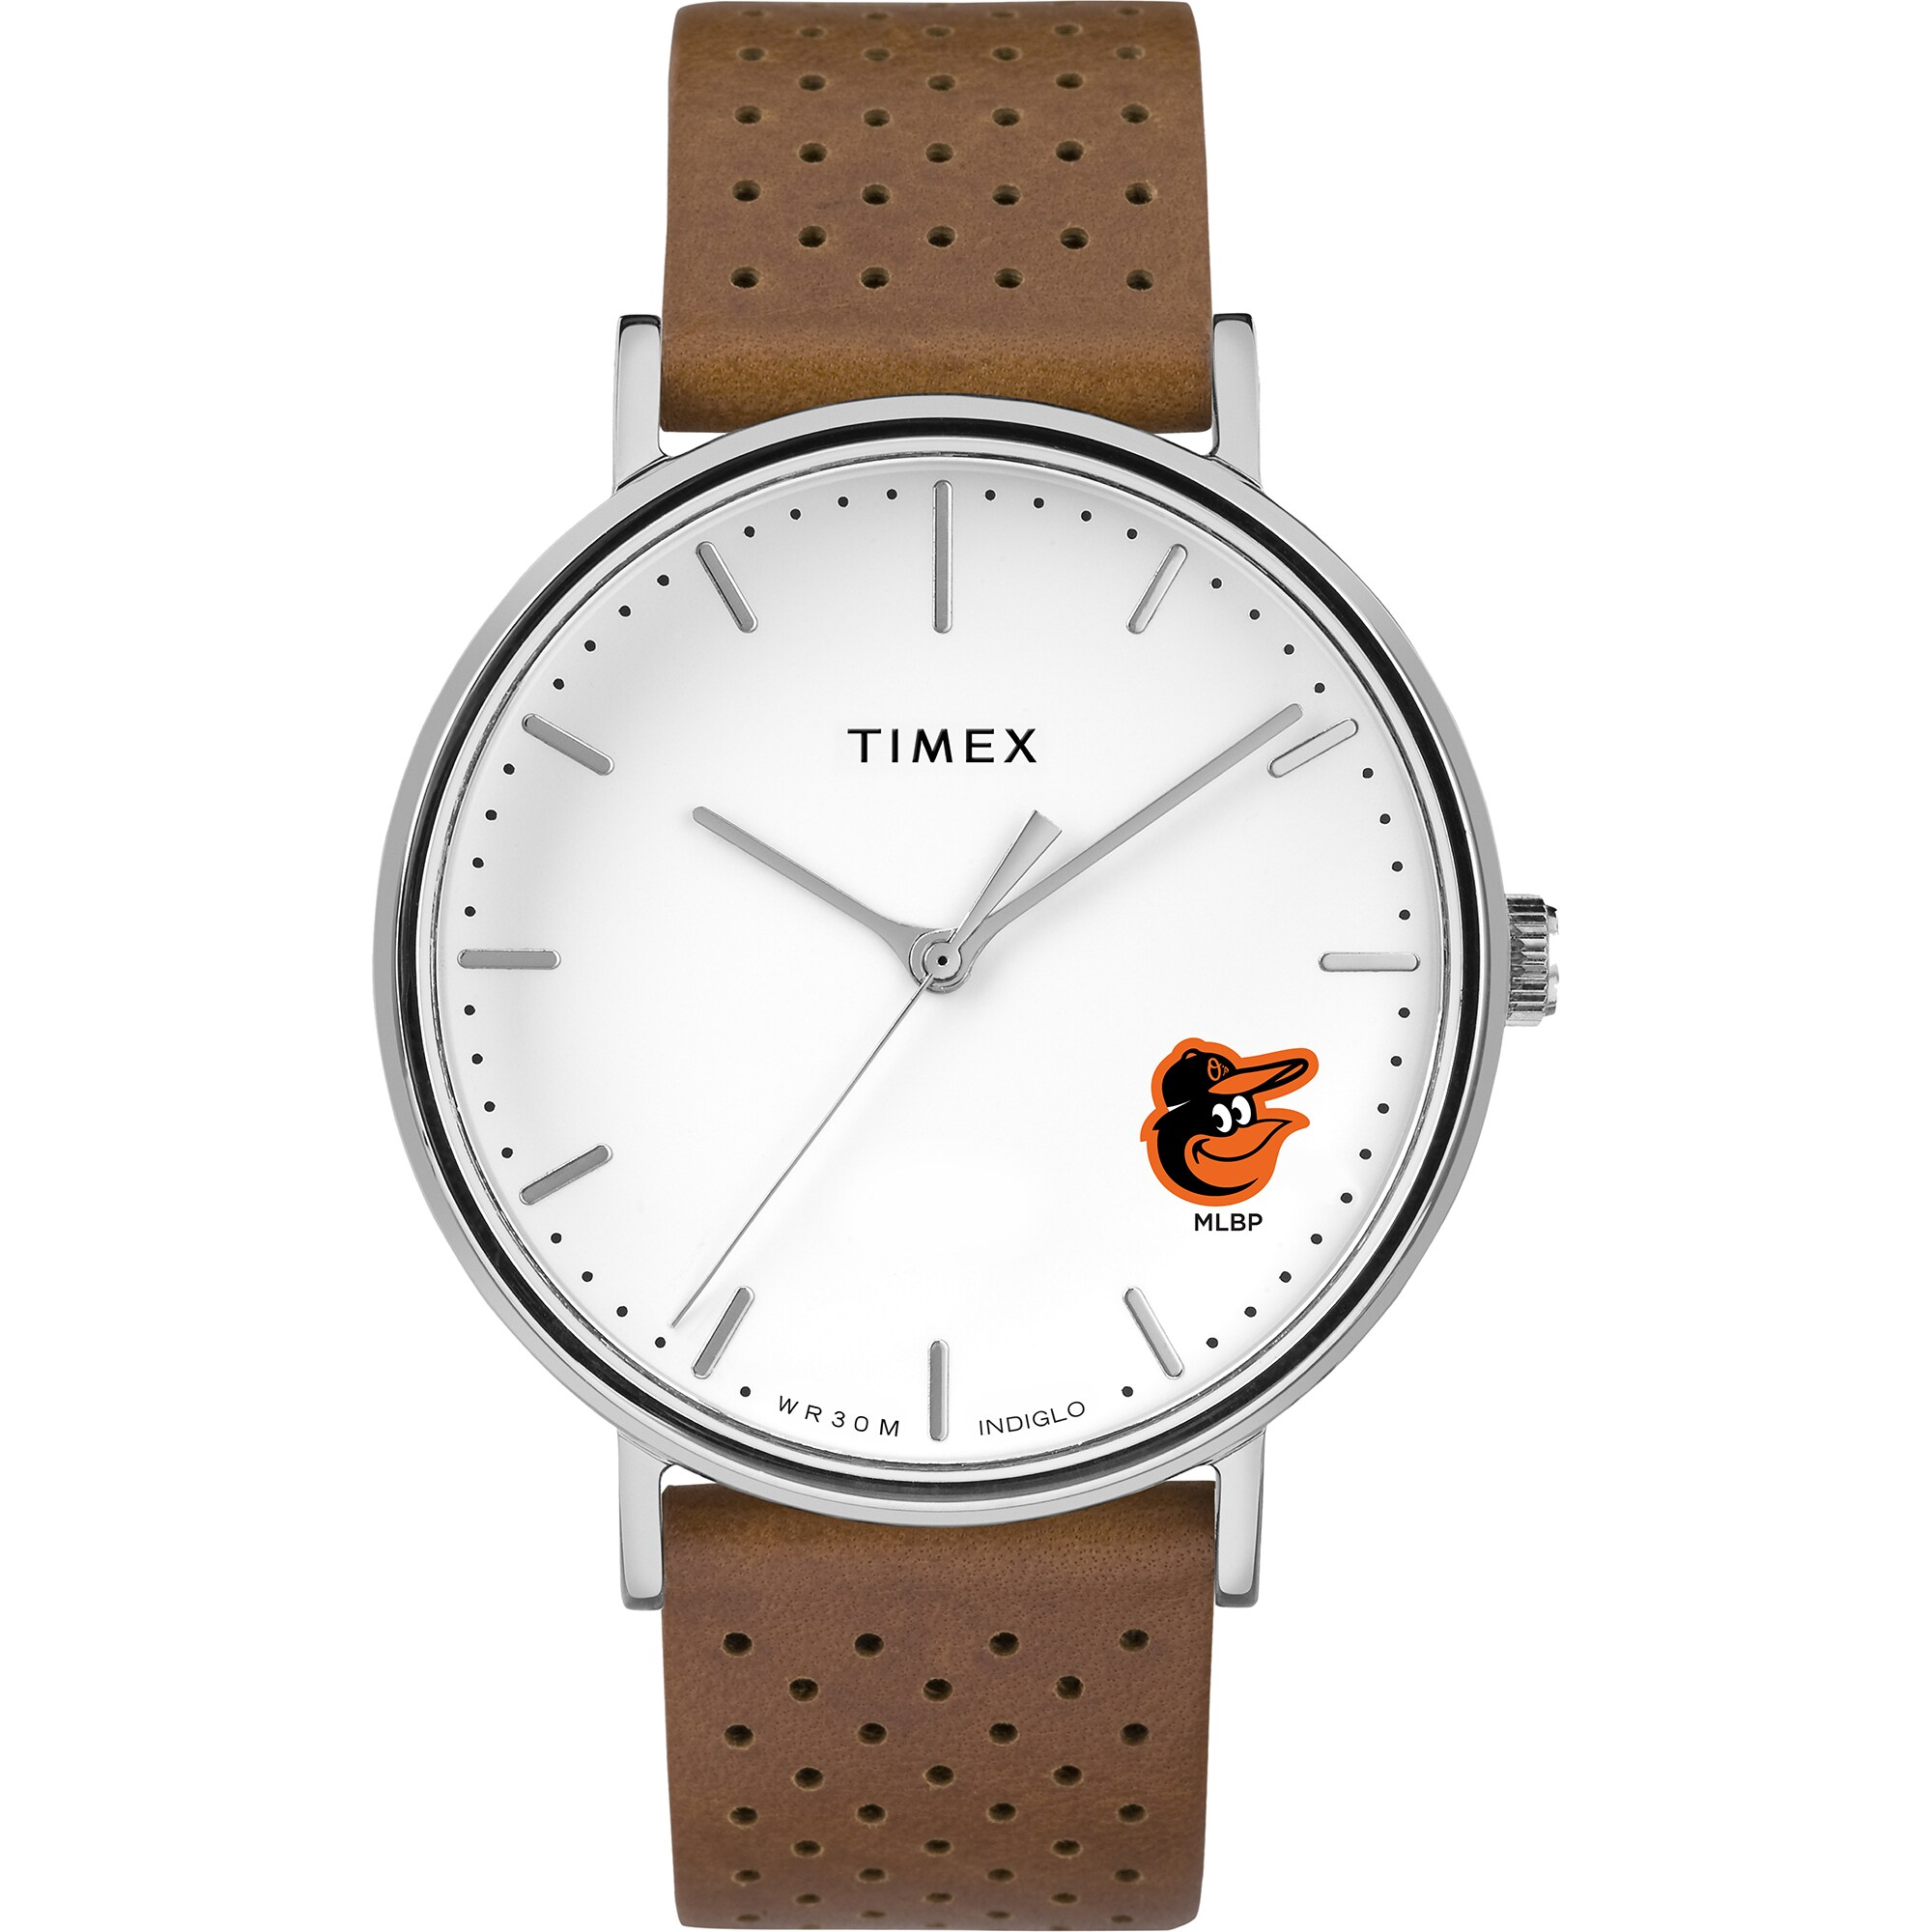 Baltimore Orioles Timex Bright Whites Tribute Collection Watch